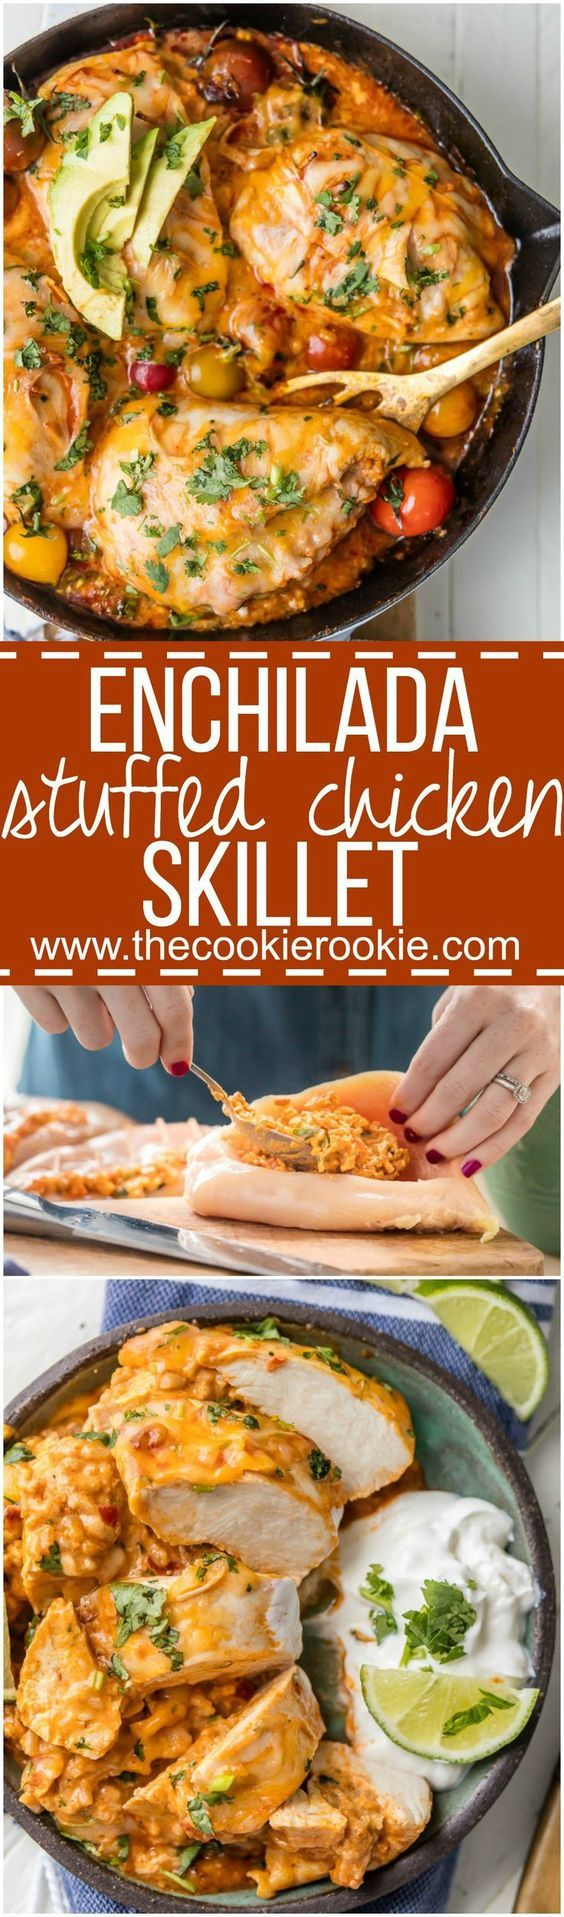 This ONE PAN ENCHILADA STUFFED CHICKEN SKILLET (Or Inside Out Chicken Enchiladas) are a family favorite! Chicken stuffed with rice, enchilada sauce, cream cheese, tomatoes, and more cheese! You've never had a meal this good!